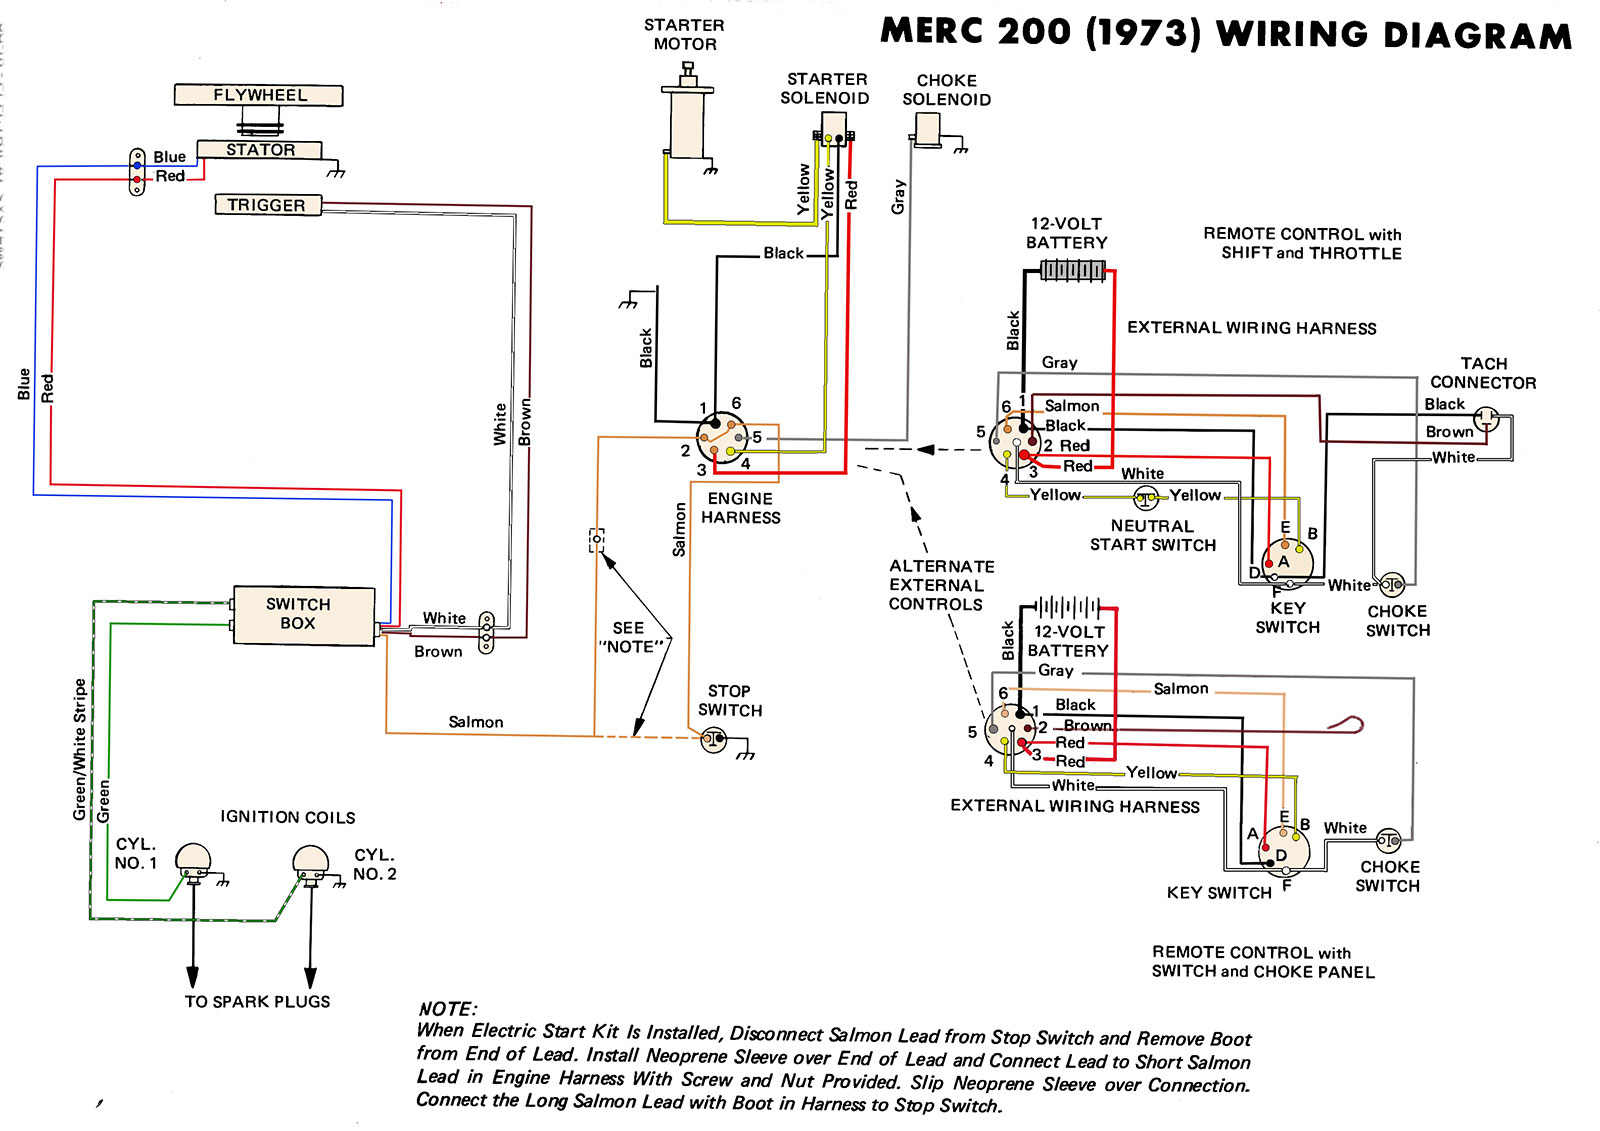 Mariner Outboard Motor Wiring Diagram 50 Hp Evinrude Power Pack 75 Manual E Books75